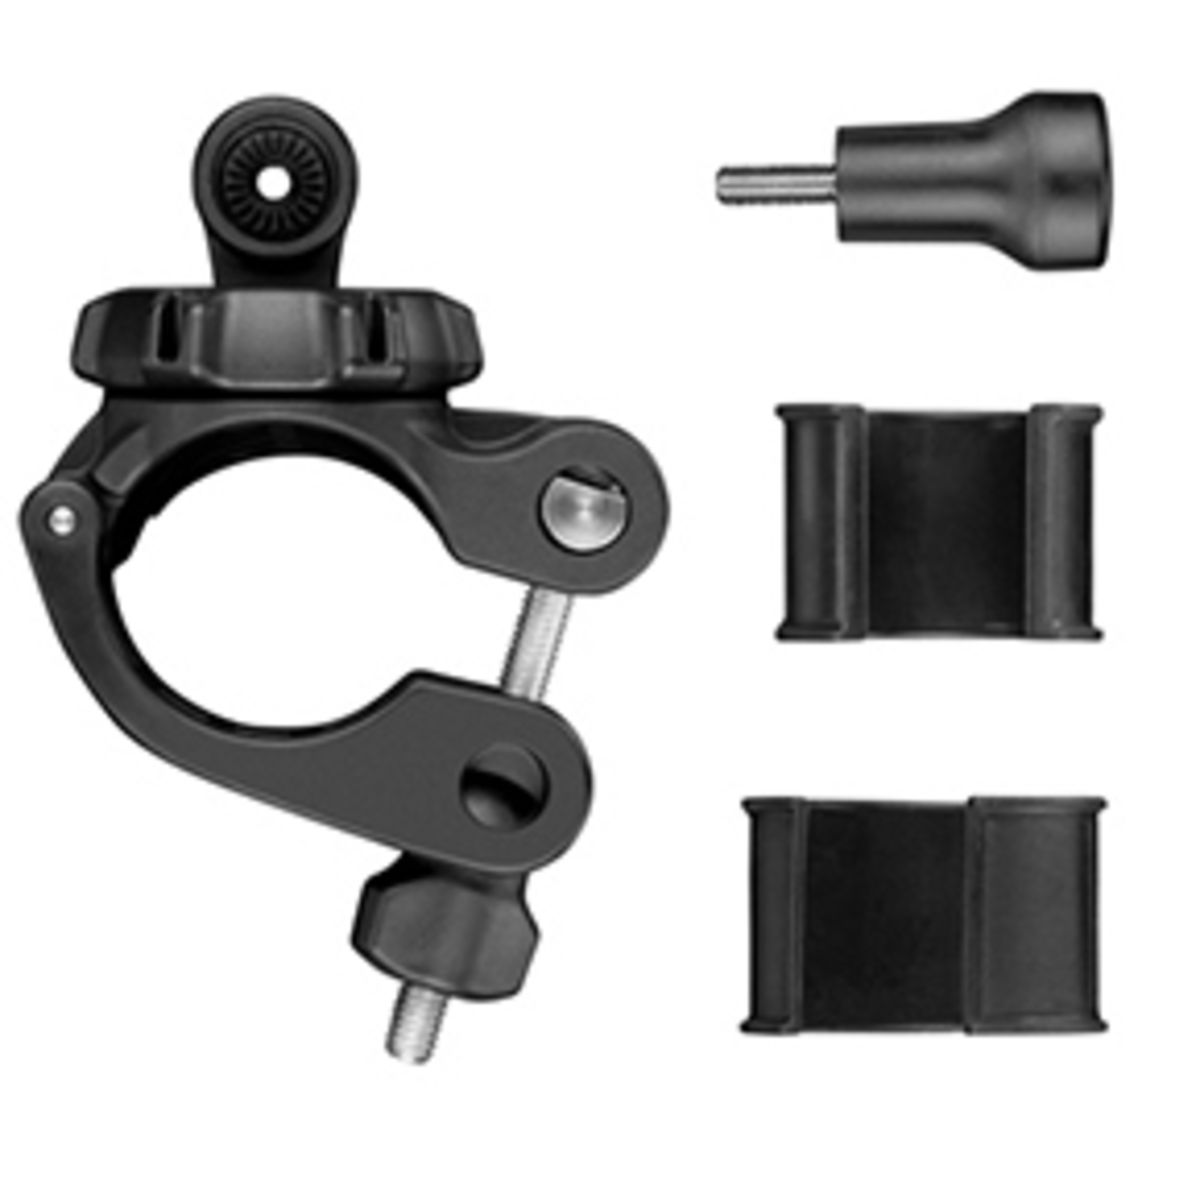 bicycle bracket for VIRB action camera